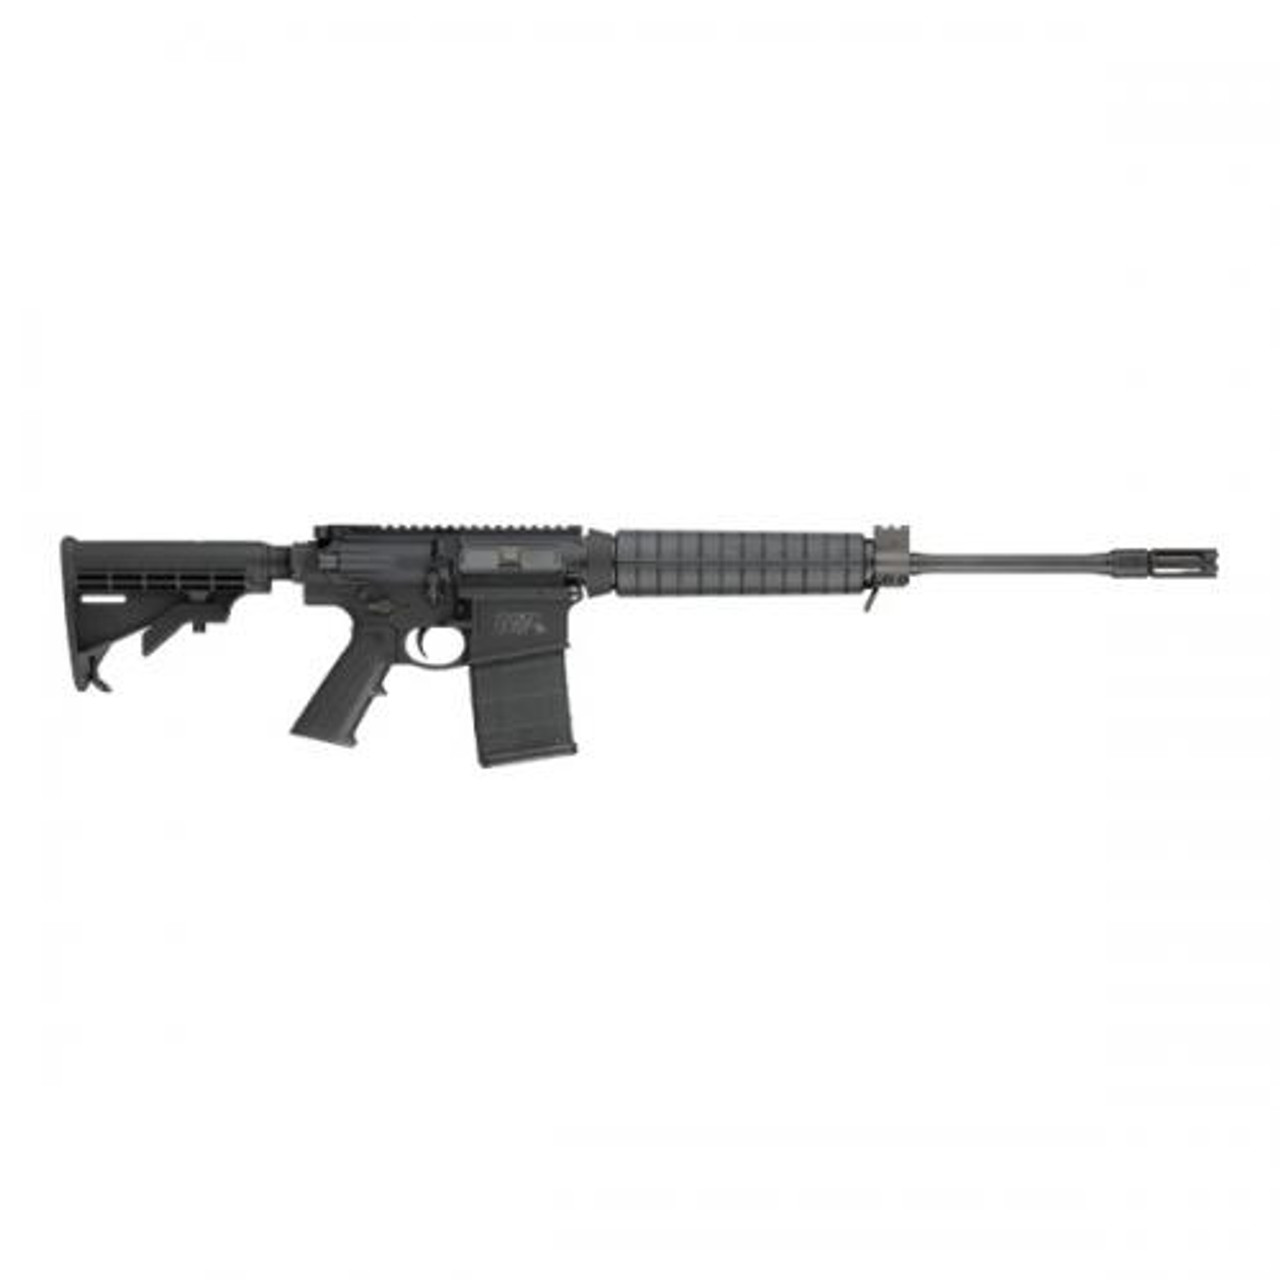 Smith & Wesson M&P10 Rifle